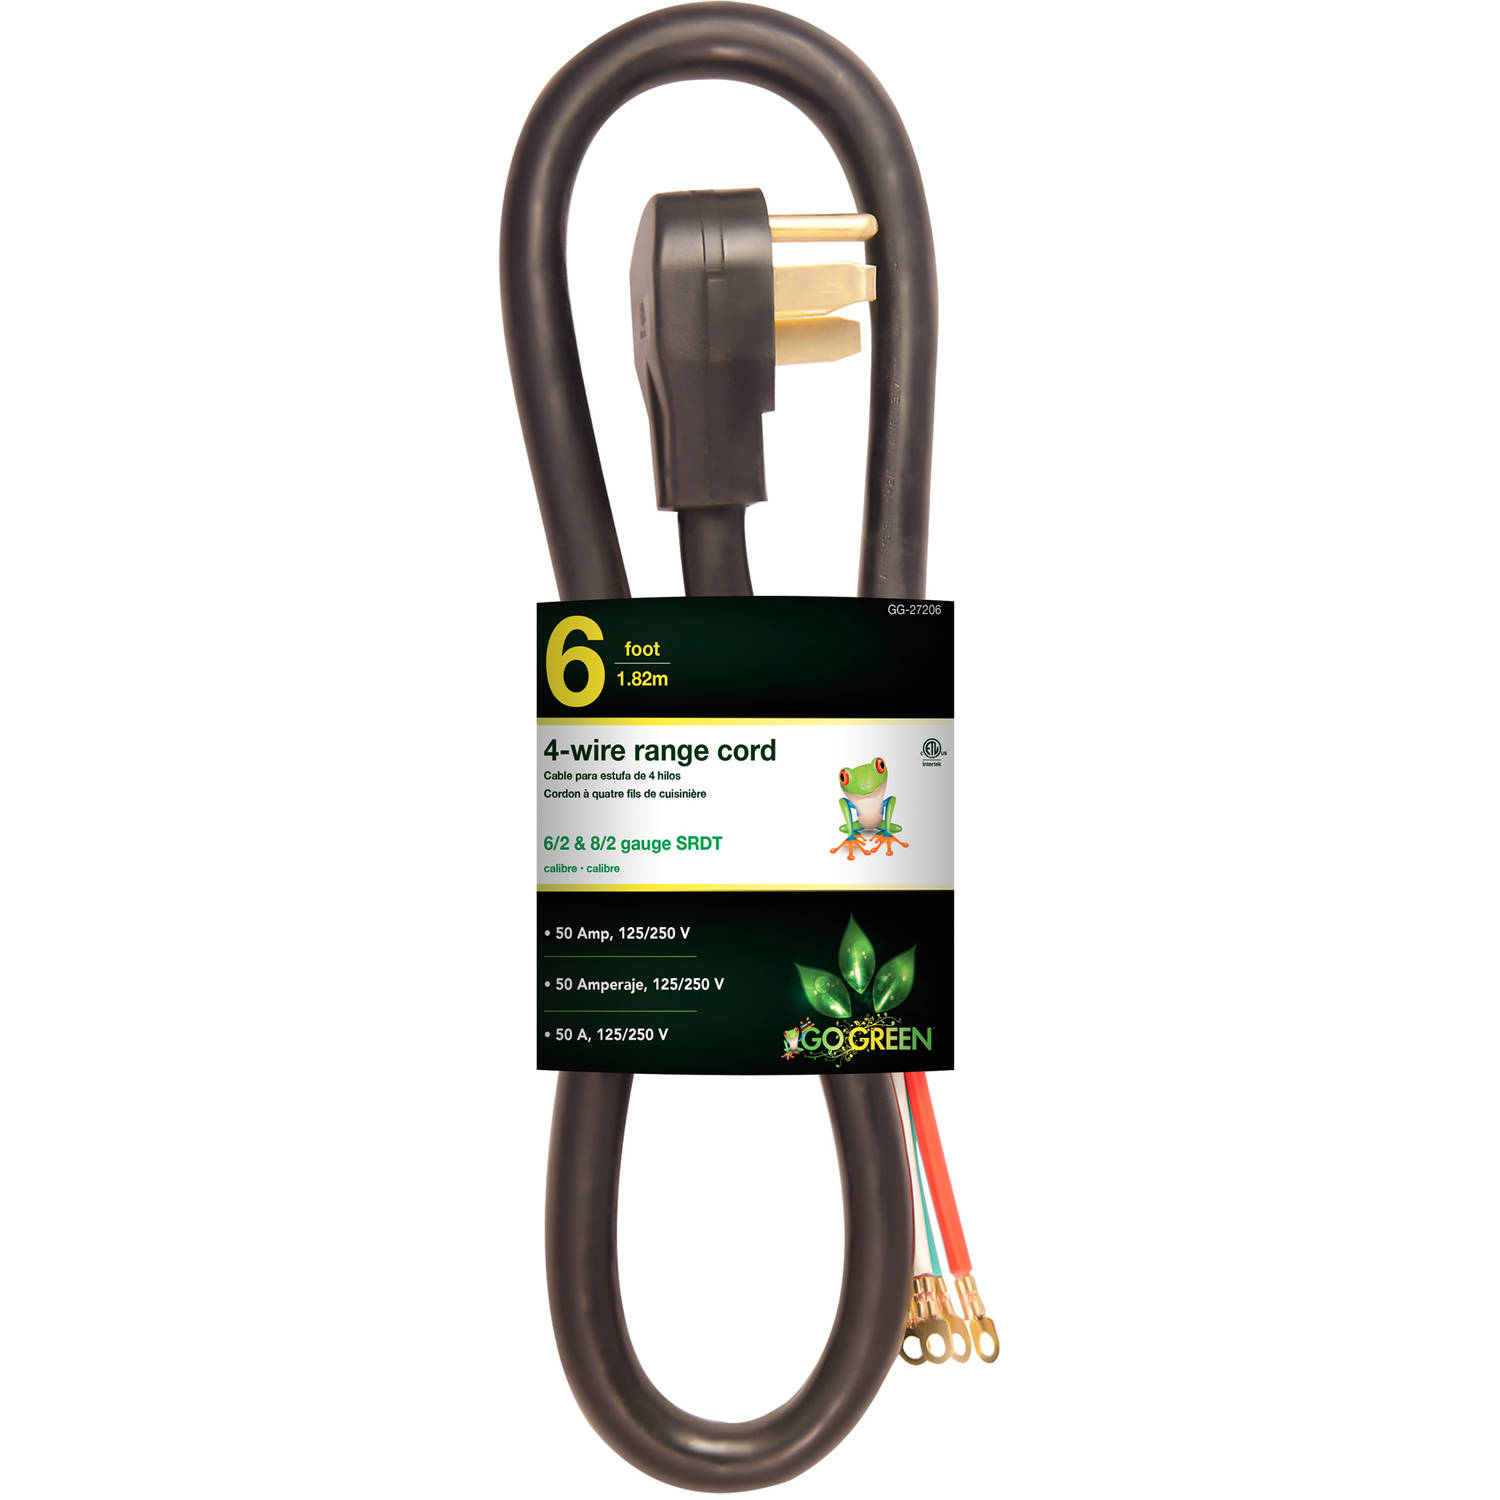 GoGreen Power 6' 4-Wire Range Cord, Black, 27206